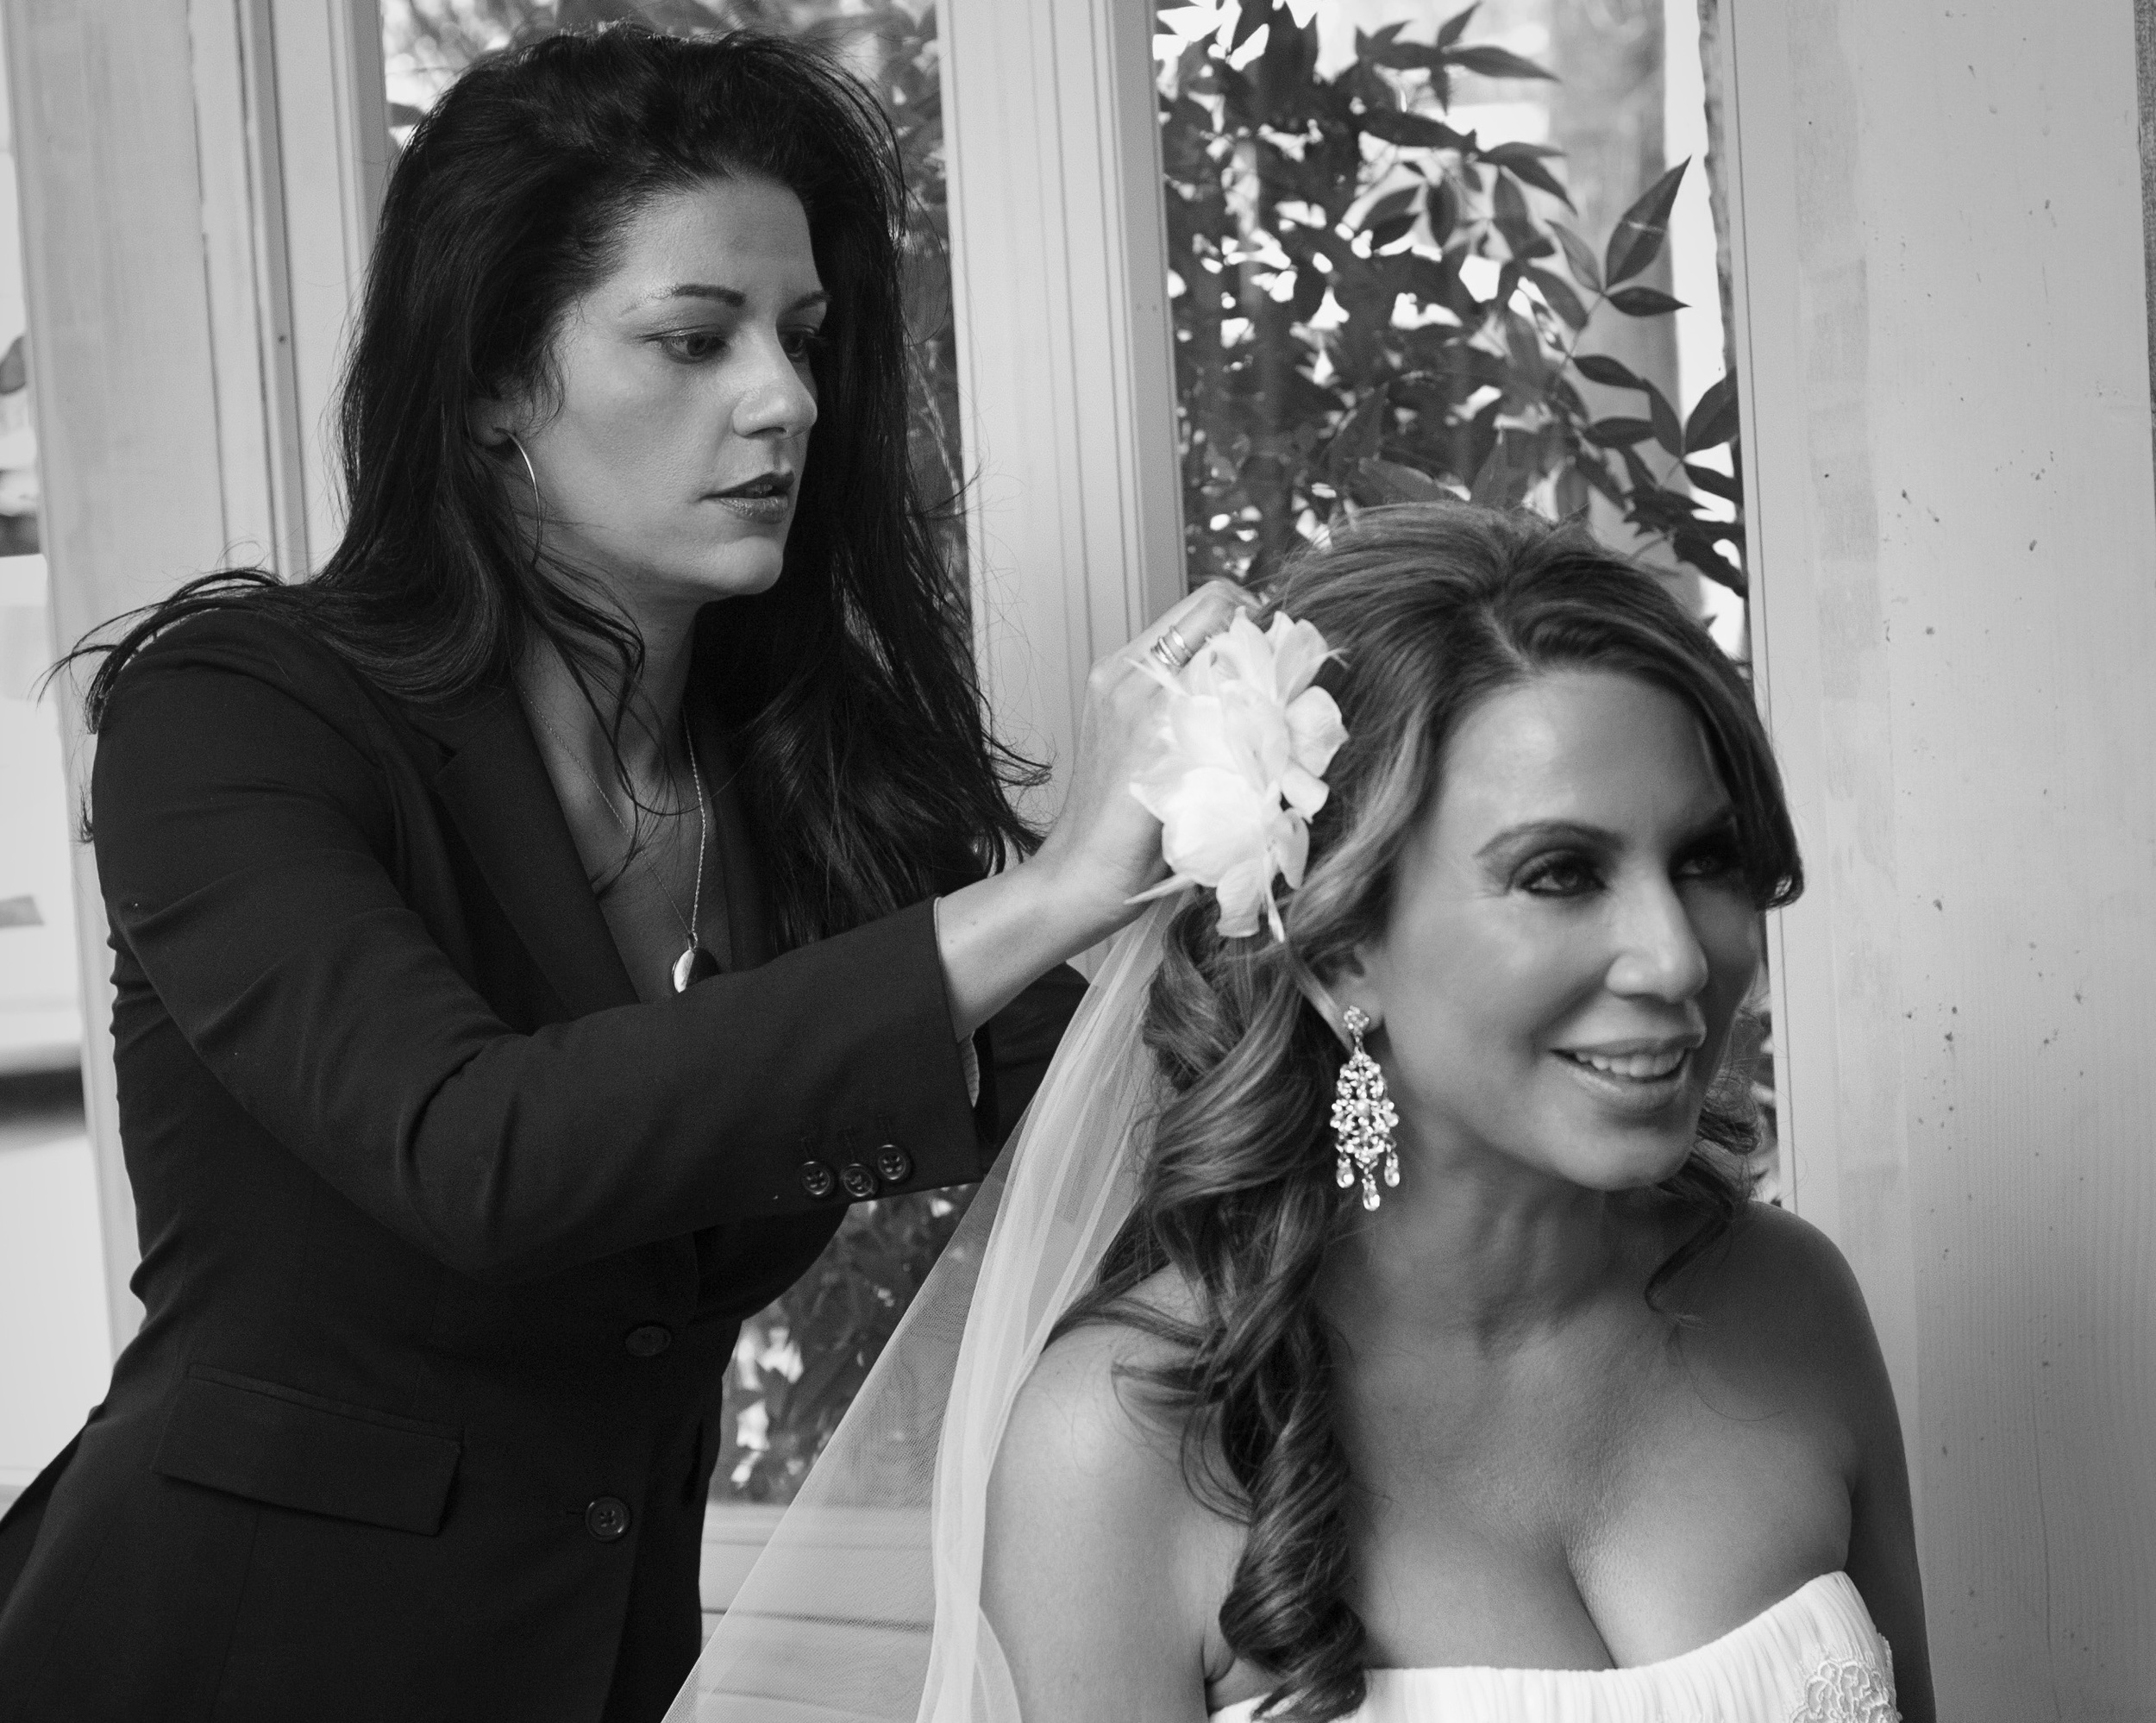 Las Vegas Wedding Planner - Am I the right fit for you? Photo by Altf.com.